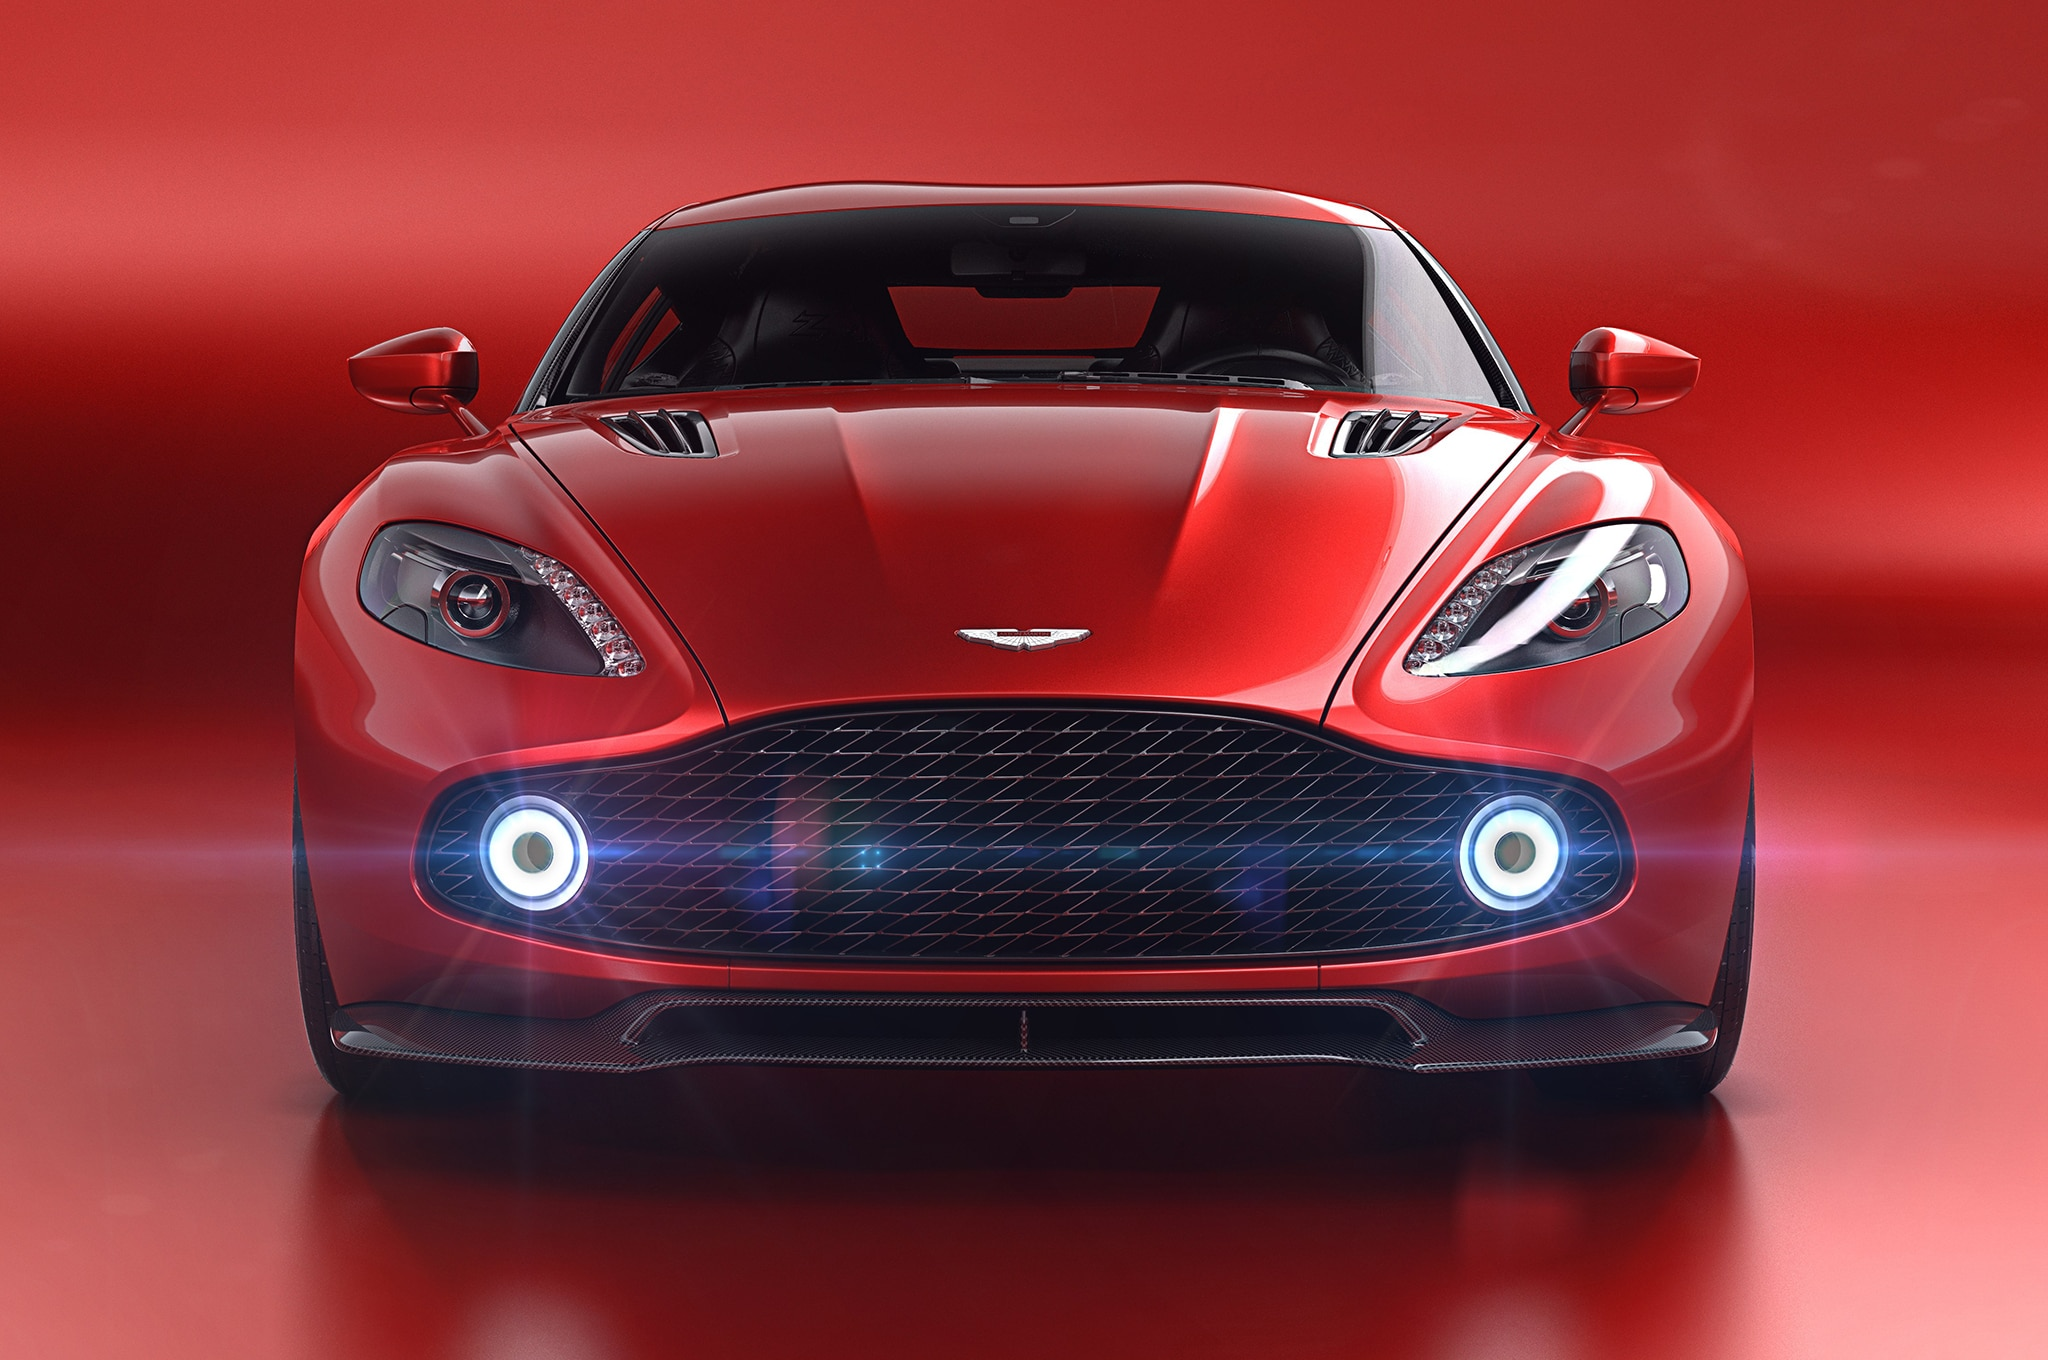 The New Aston Martin Vanquish Zagato Concept Is Painfully Gorgeous